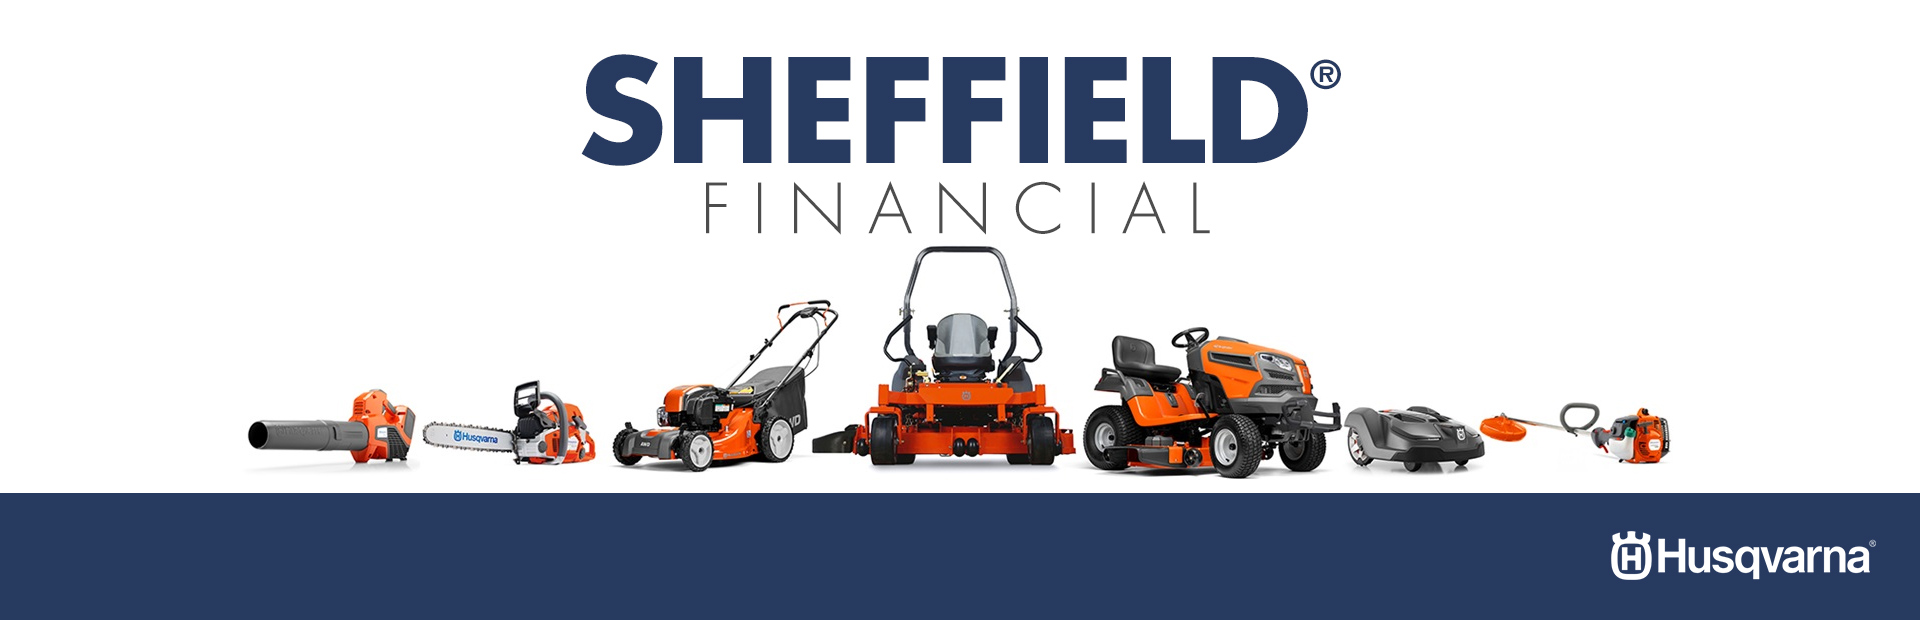 Husqvarna: Sheffield® Financial